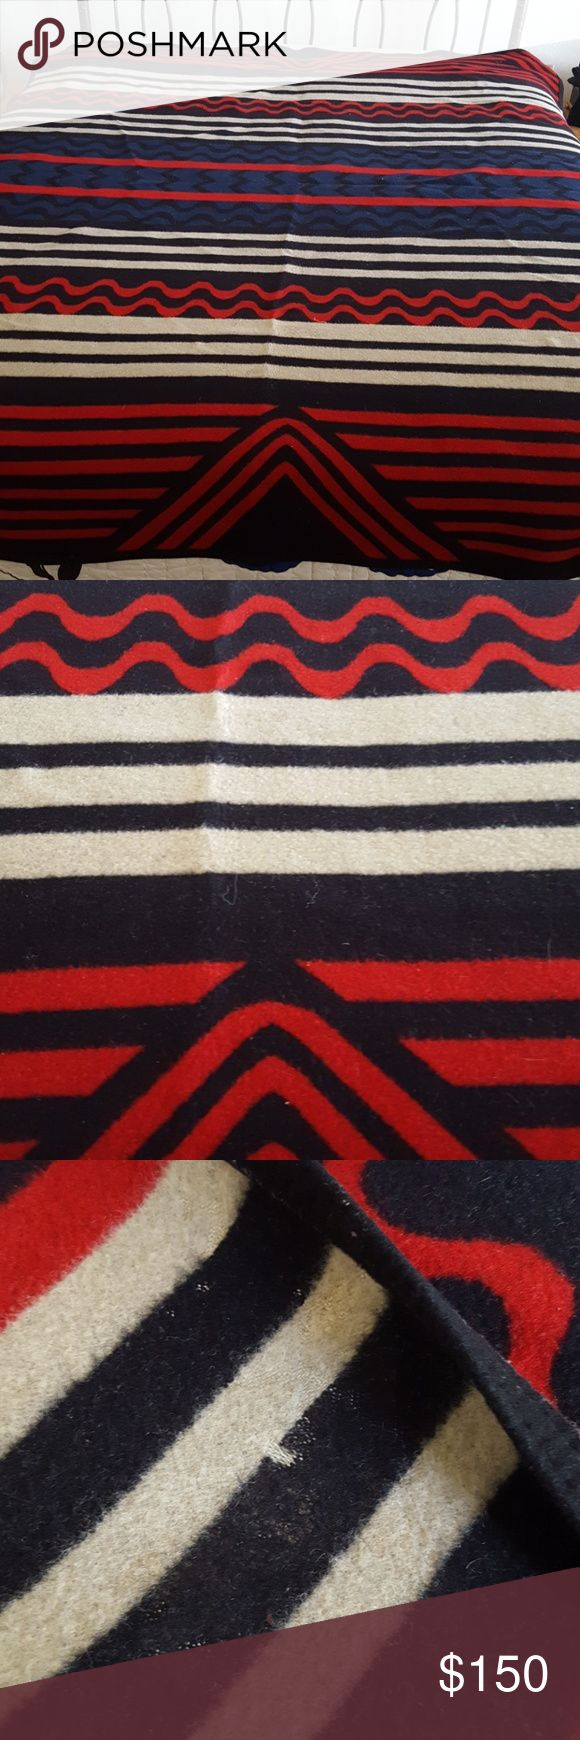 Vintage Pendleton Navajo Blanket Vintage Navajo print Pendleton Blanket. You cannot find this blanket anymore. (Unless you get lucky at a pawn shop in the southwest). Measures 65x 80. Does need a cleaning. Overall in great shape except for noted moth bites see pics. Pendleton Other